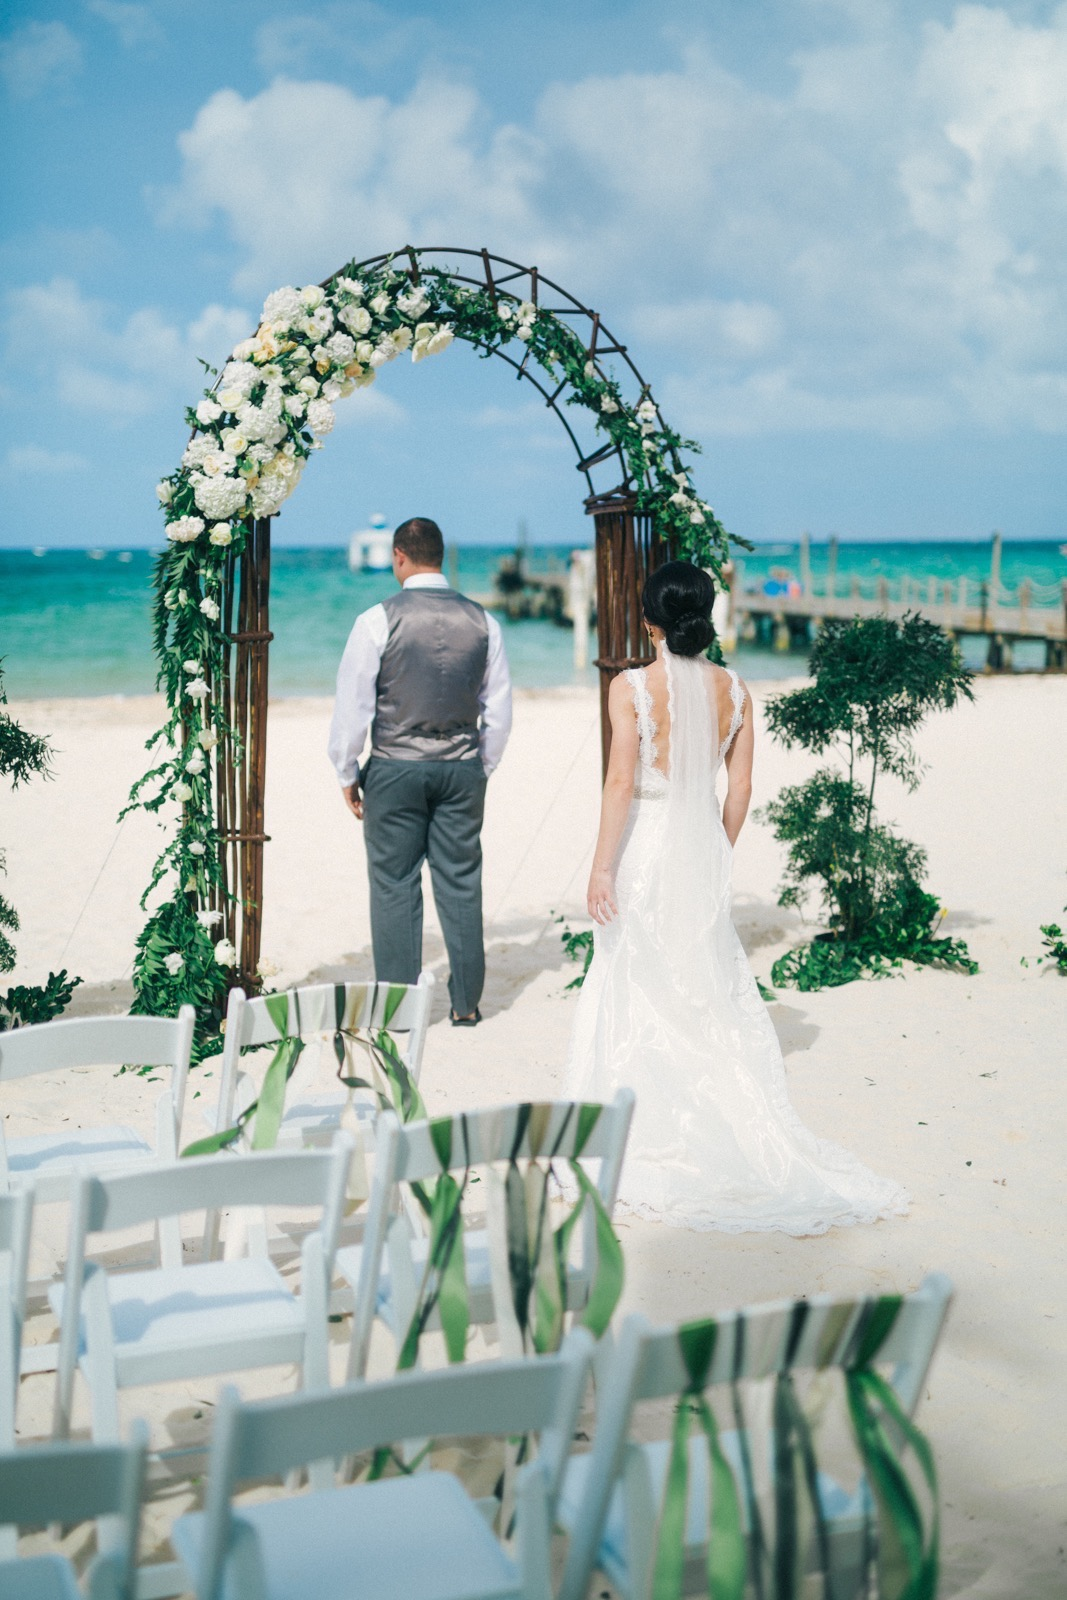 Aisle Perfect wedding in Huracan Cafe by Asia Pimentel Photography1